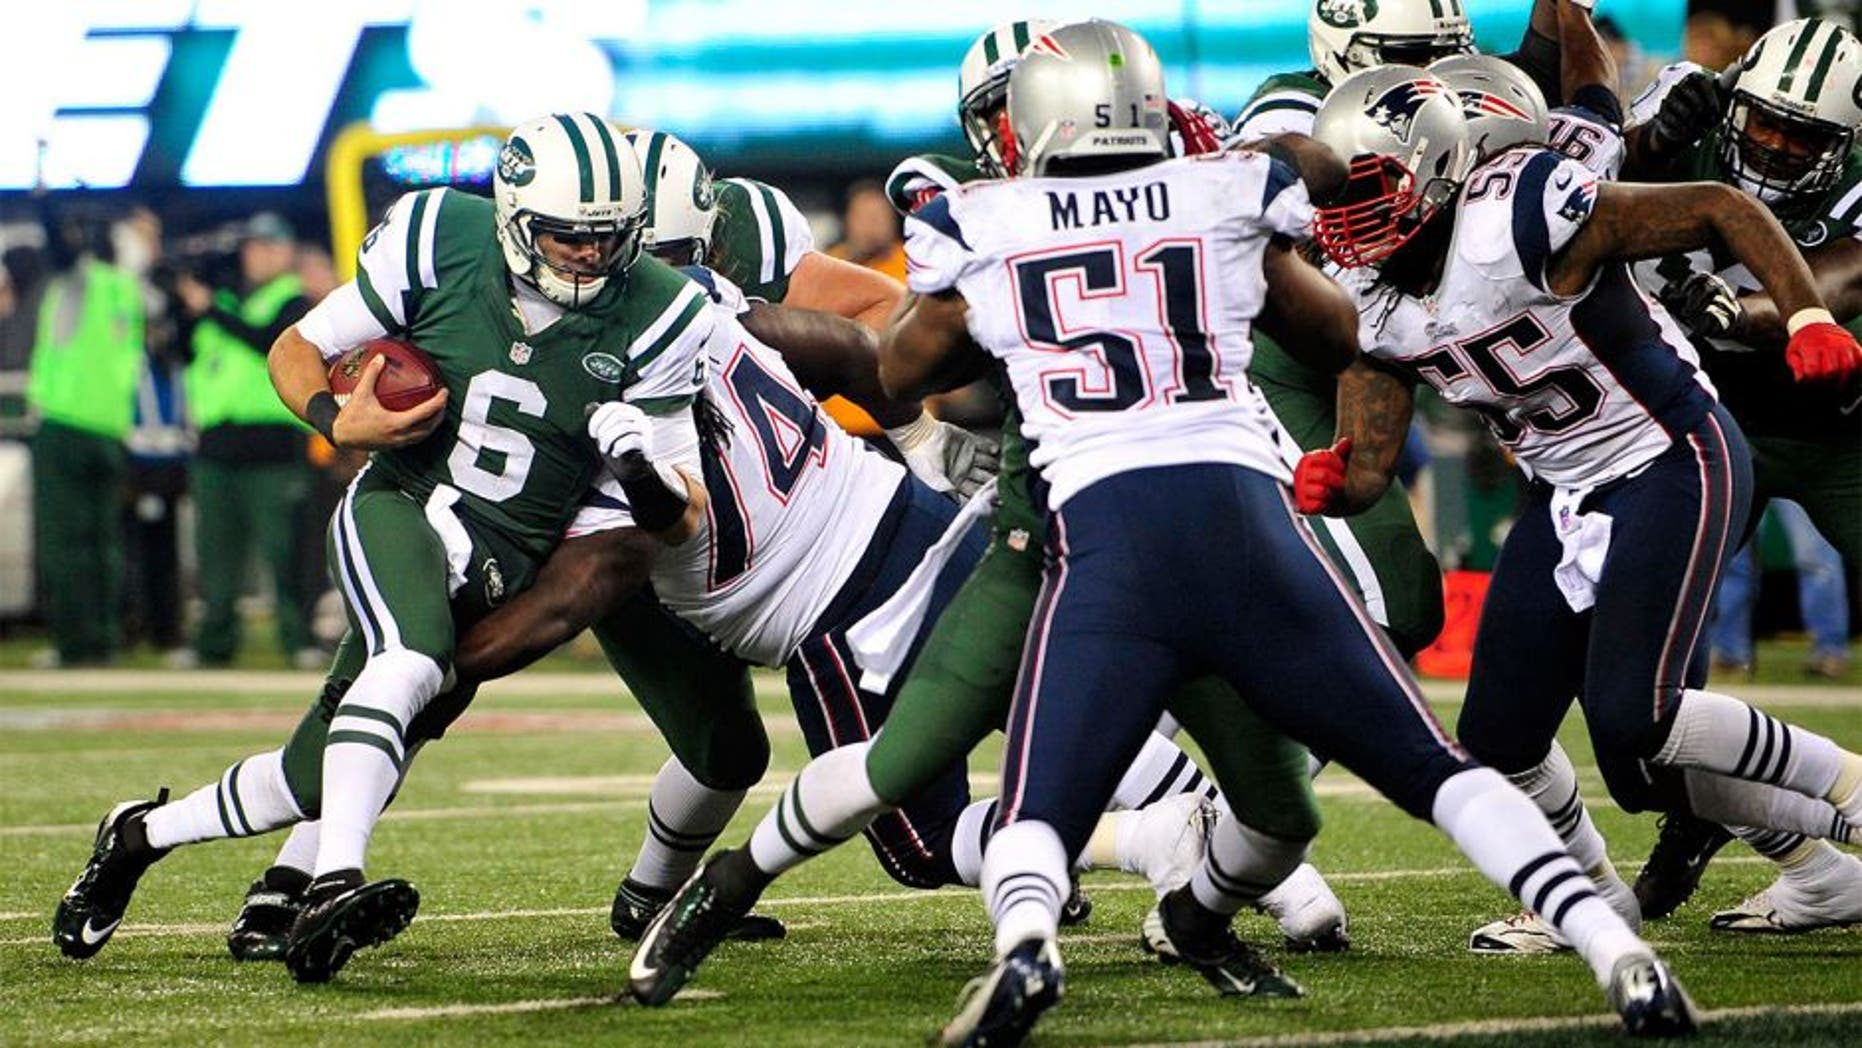 Nov 22, 2012; East Rutherford, NJ, USA; New York Jets quarterback Mark Sanchez (6) runs against the New England Patriots during the second half on Thanksgiving at Metlife Stadium. Mandatory Credit: Joe Camporeale-USA TODAY Sports